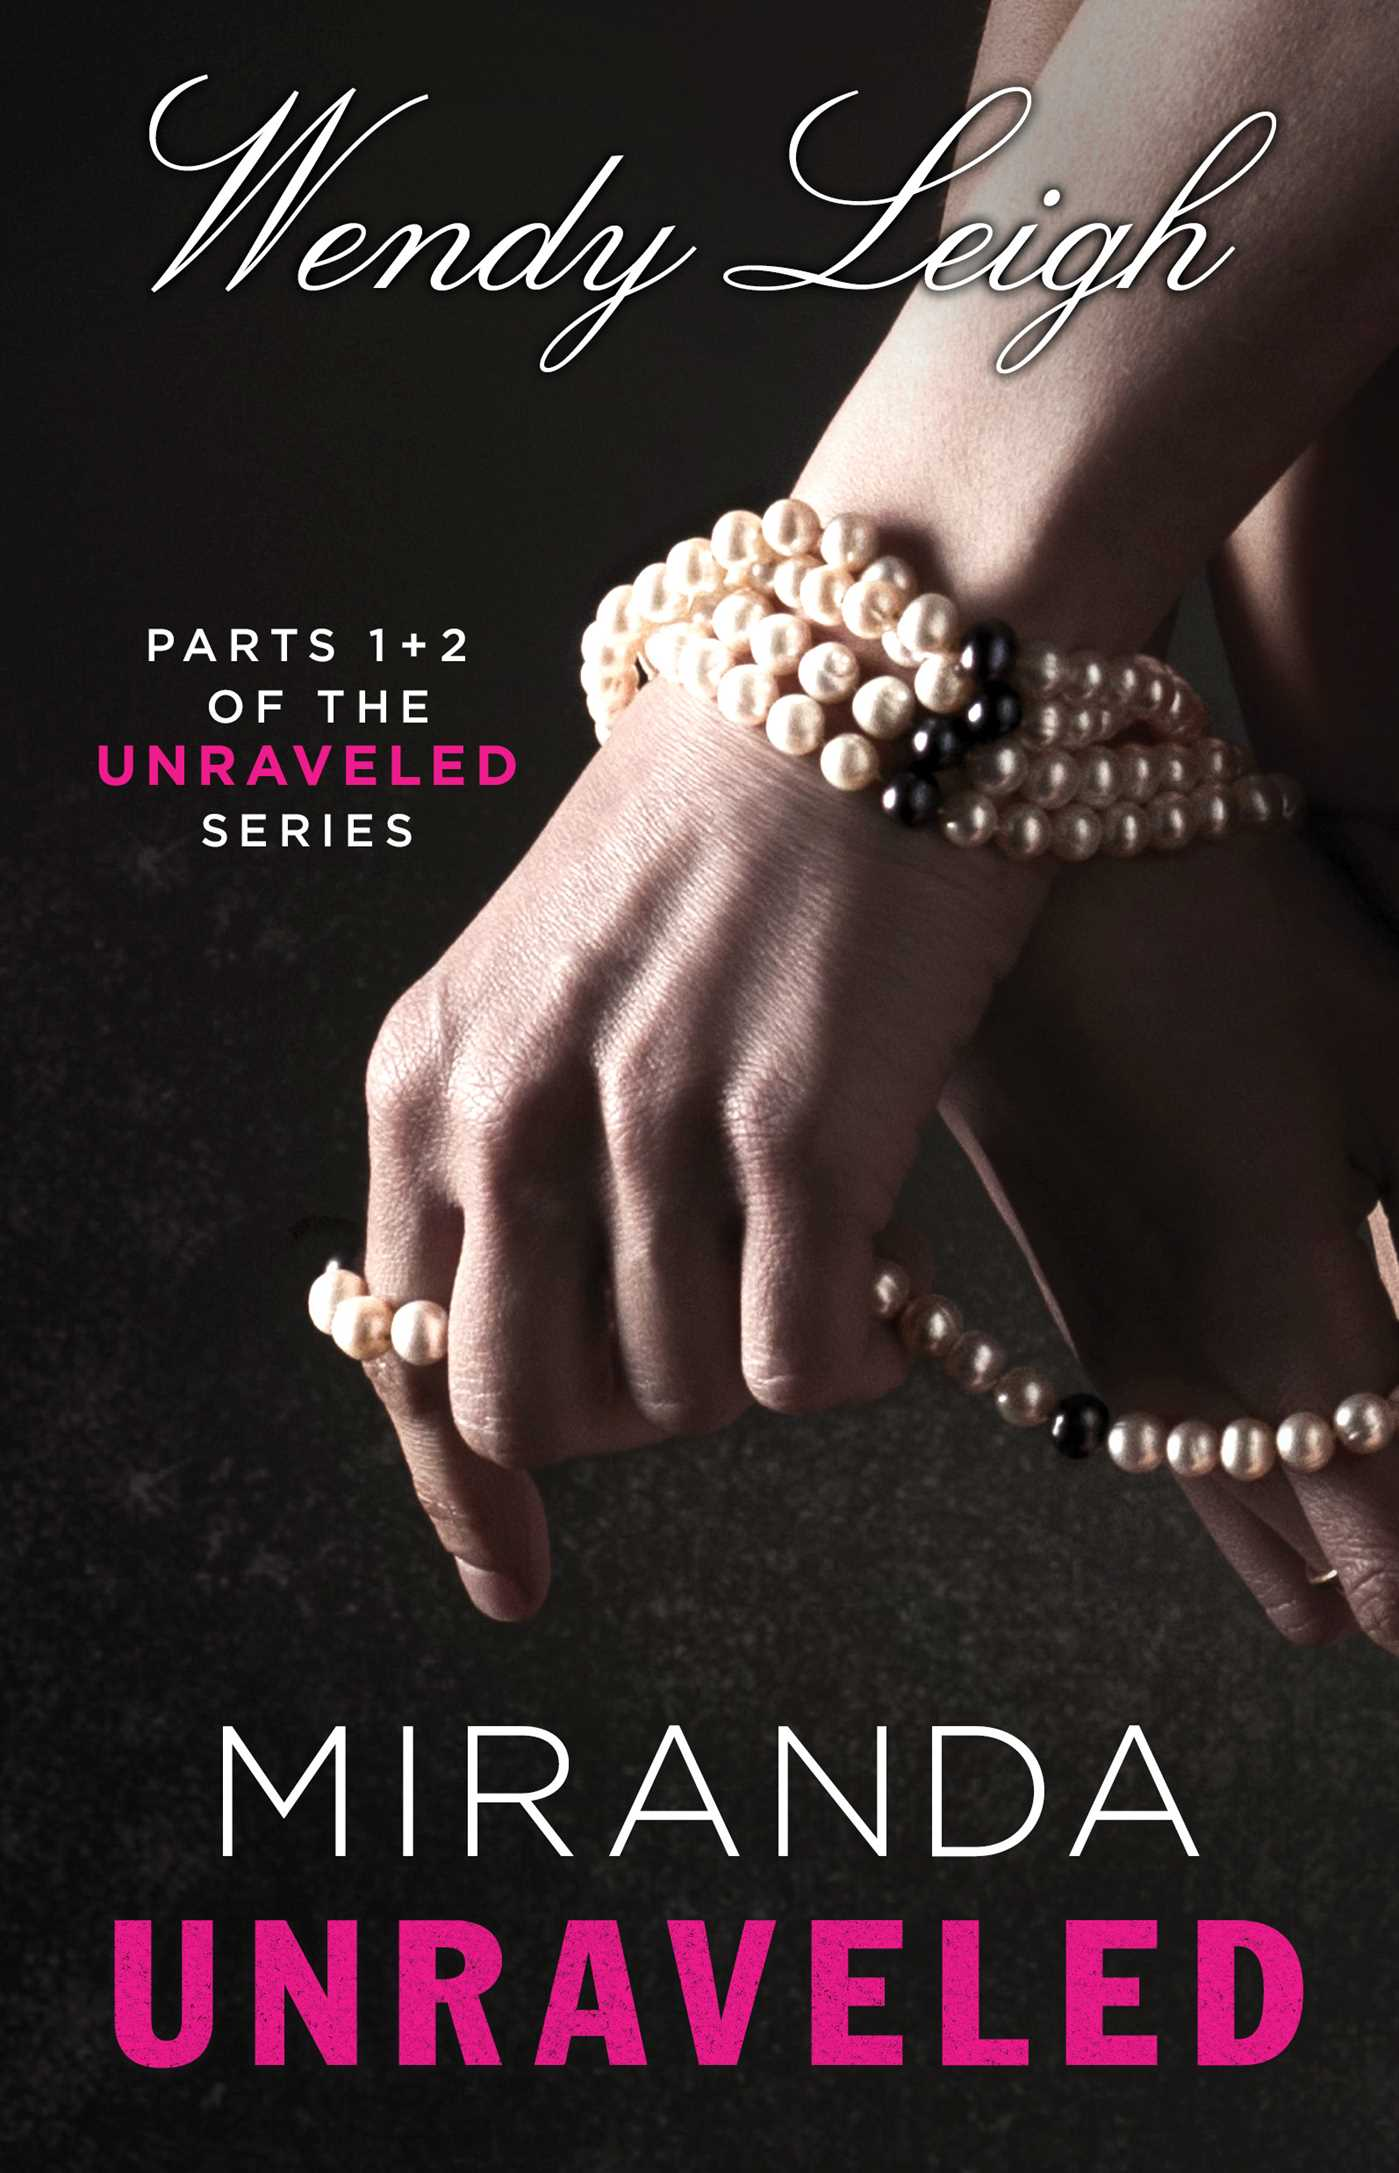 Miranda Unraveled book cover